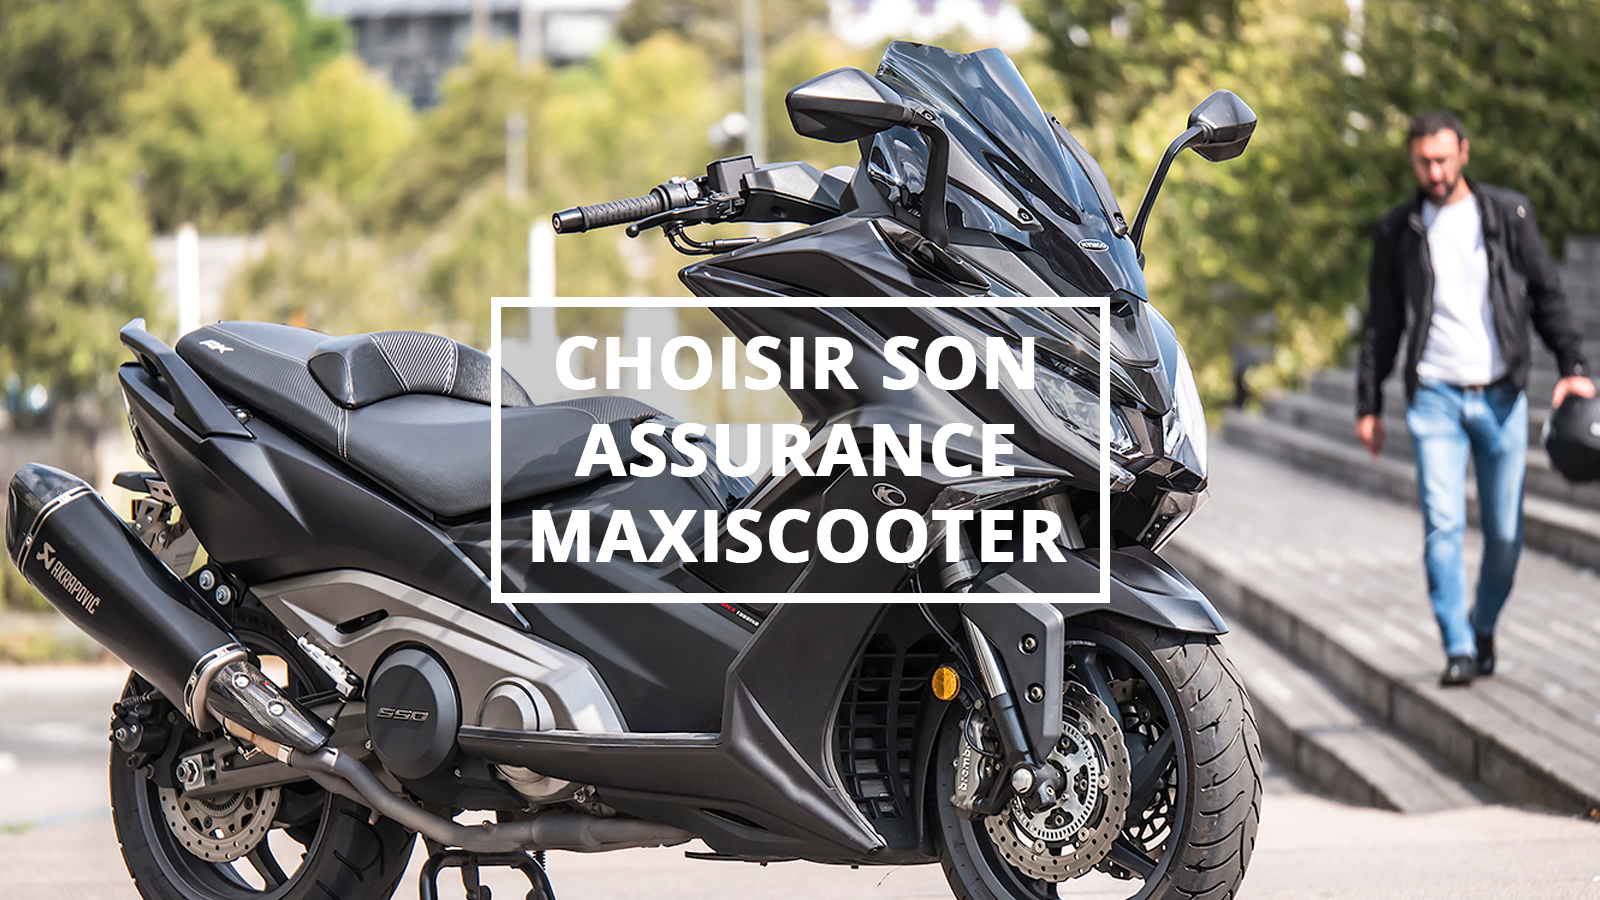 choisir-assurance-maxiscooter-featured